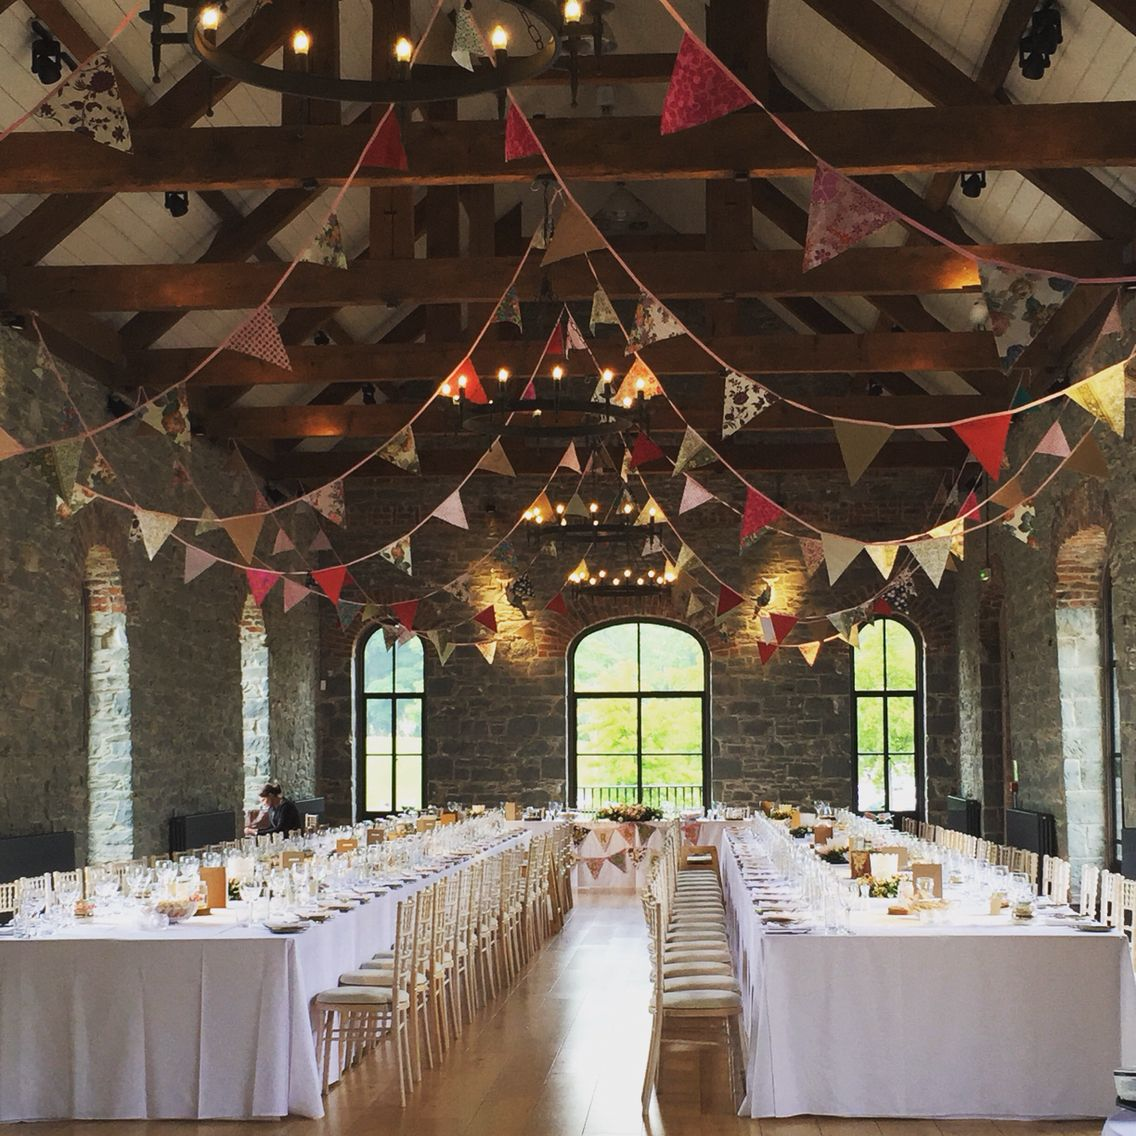 Wedding Reception Goals The Carriage Rooms At Montalto